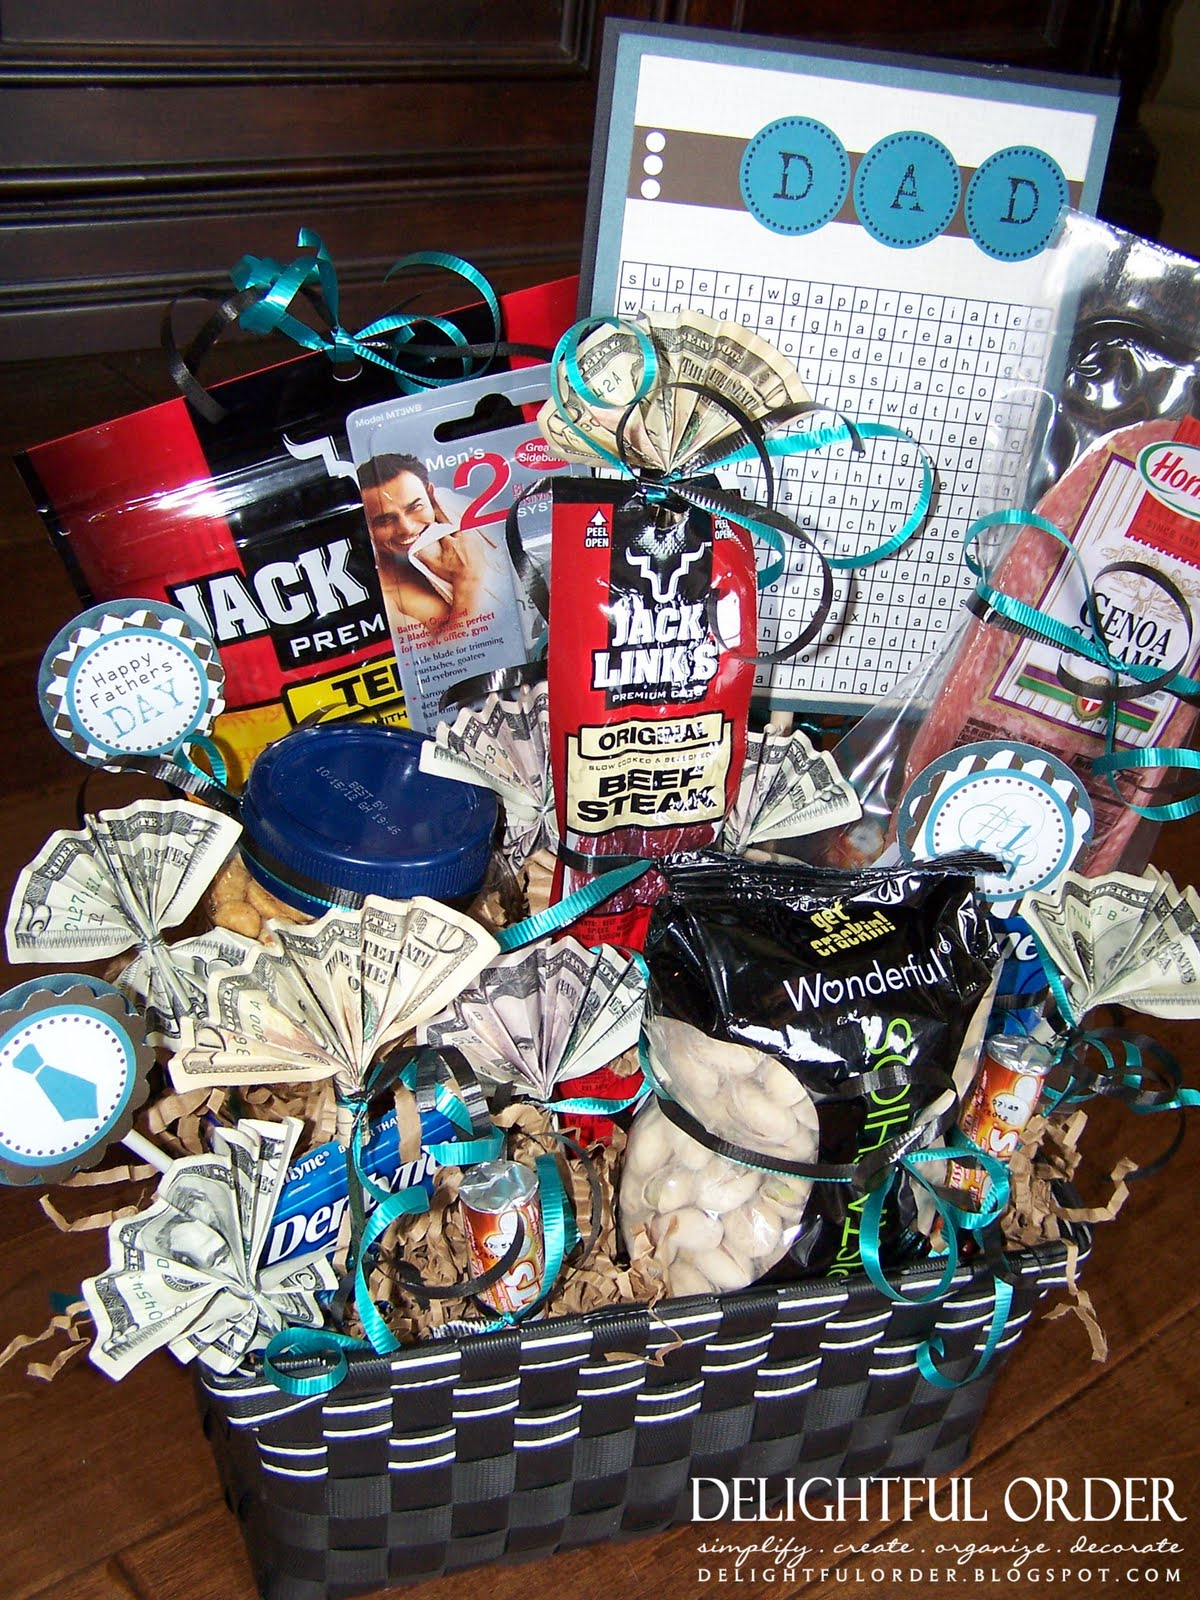 AND again, here's one last look at the Father's Day Gift Basket: